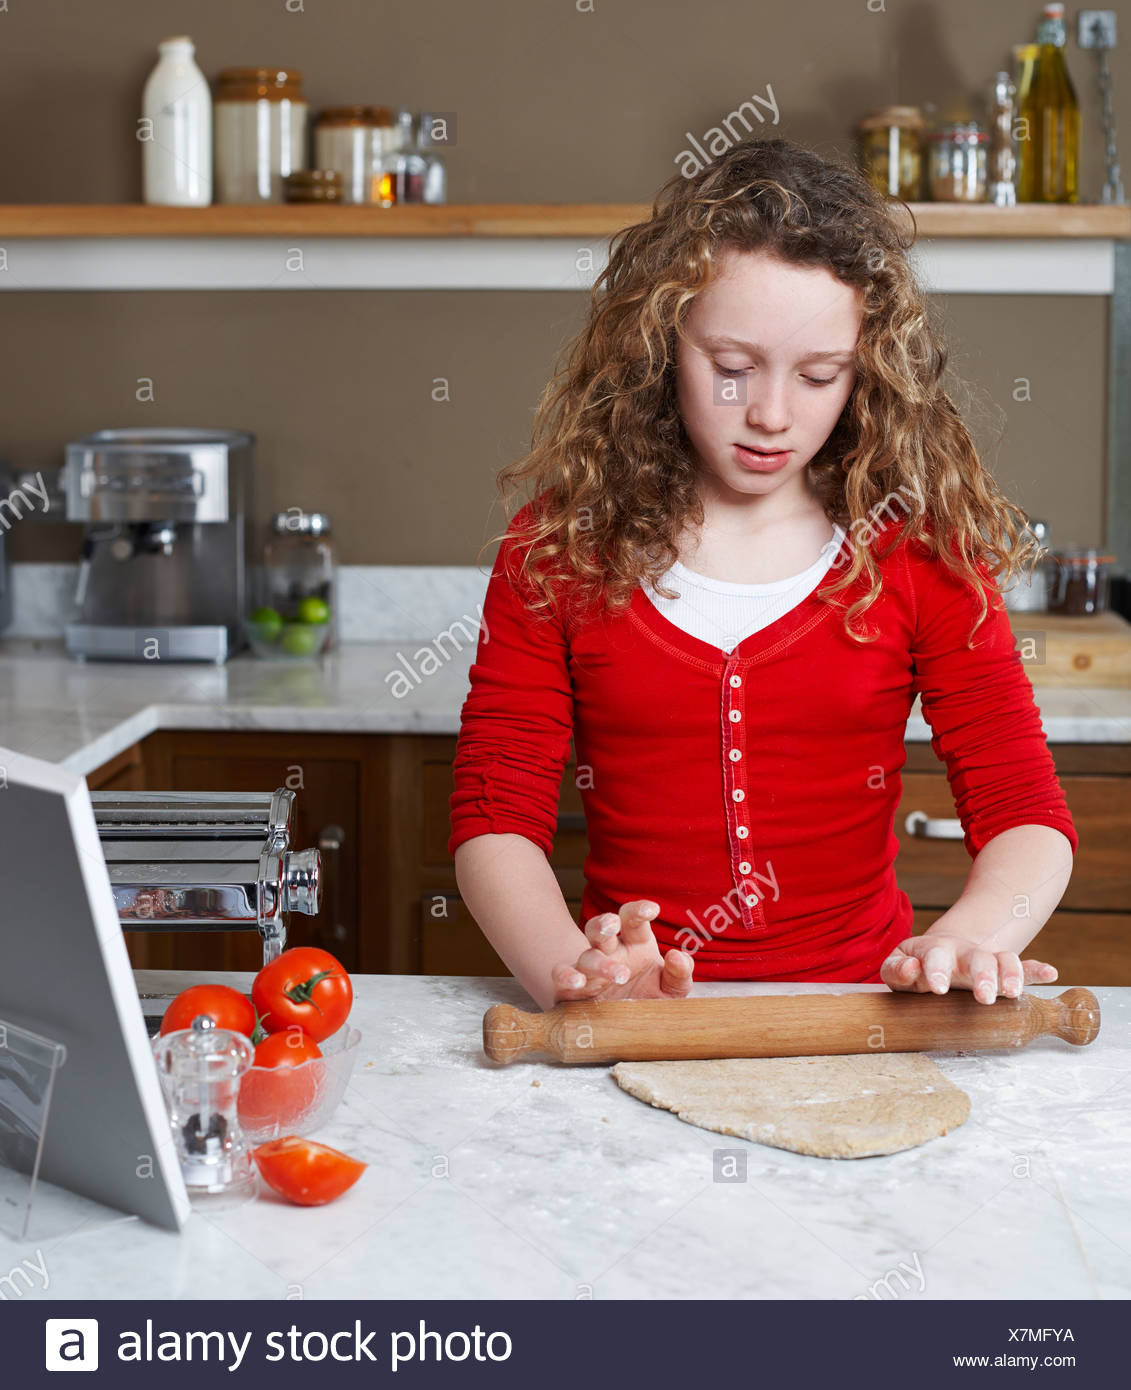 Girl rolling dough in kitchen - Stock Image